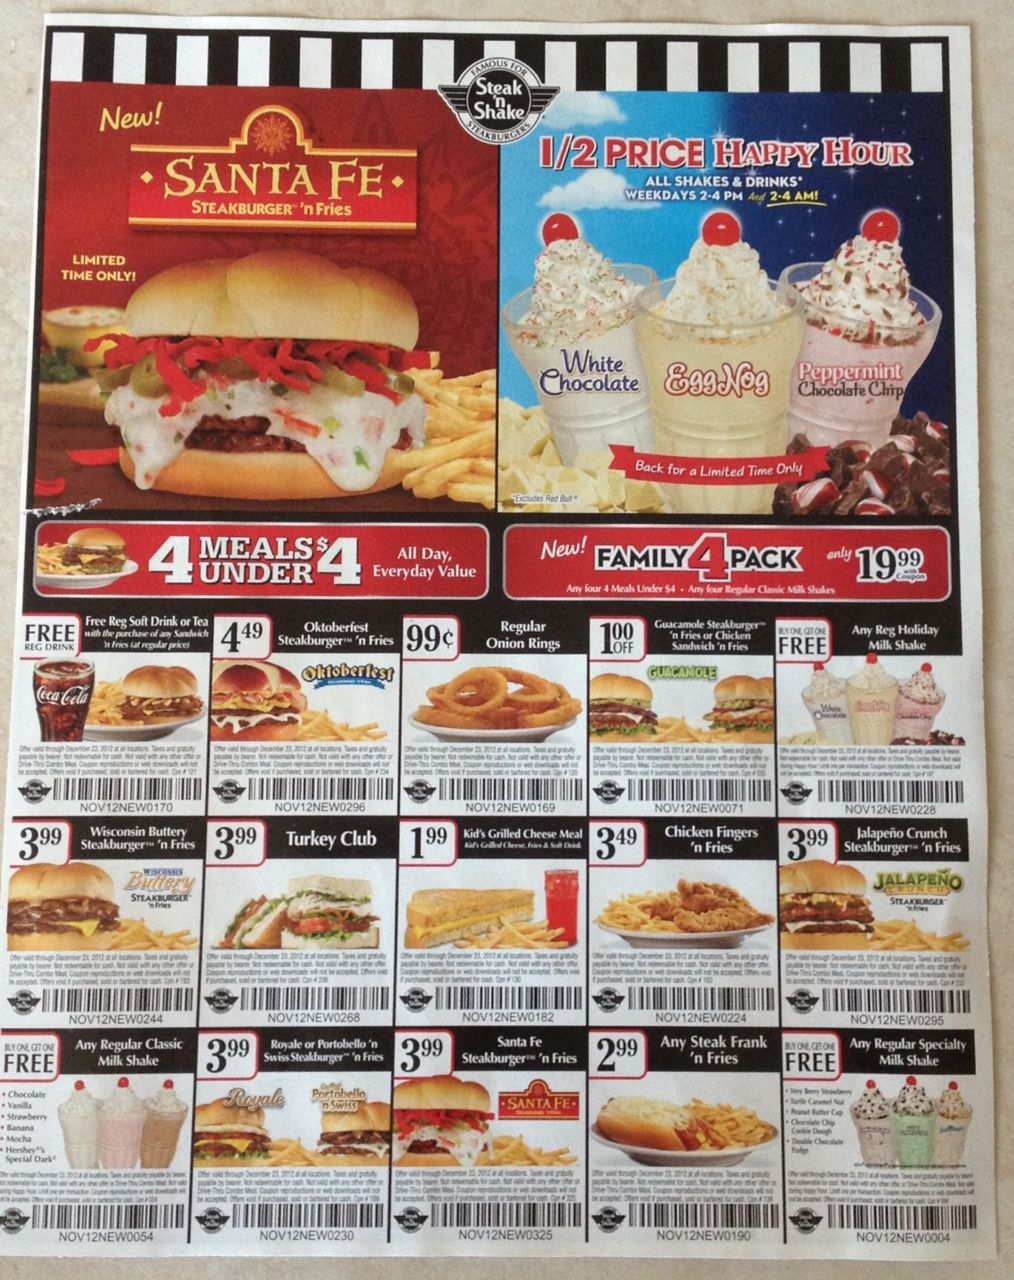 Steak and shake coupons july 2019